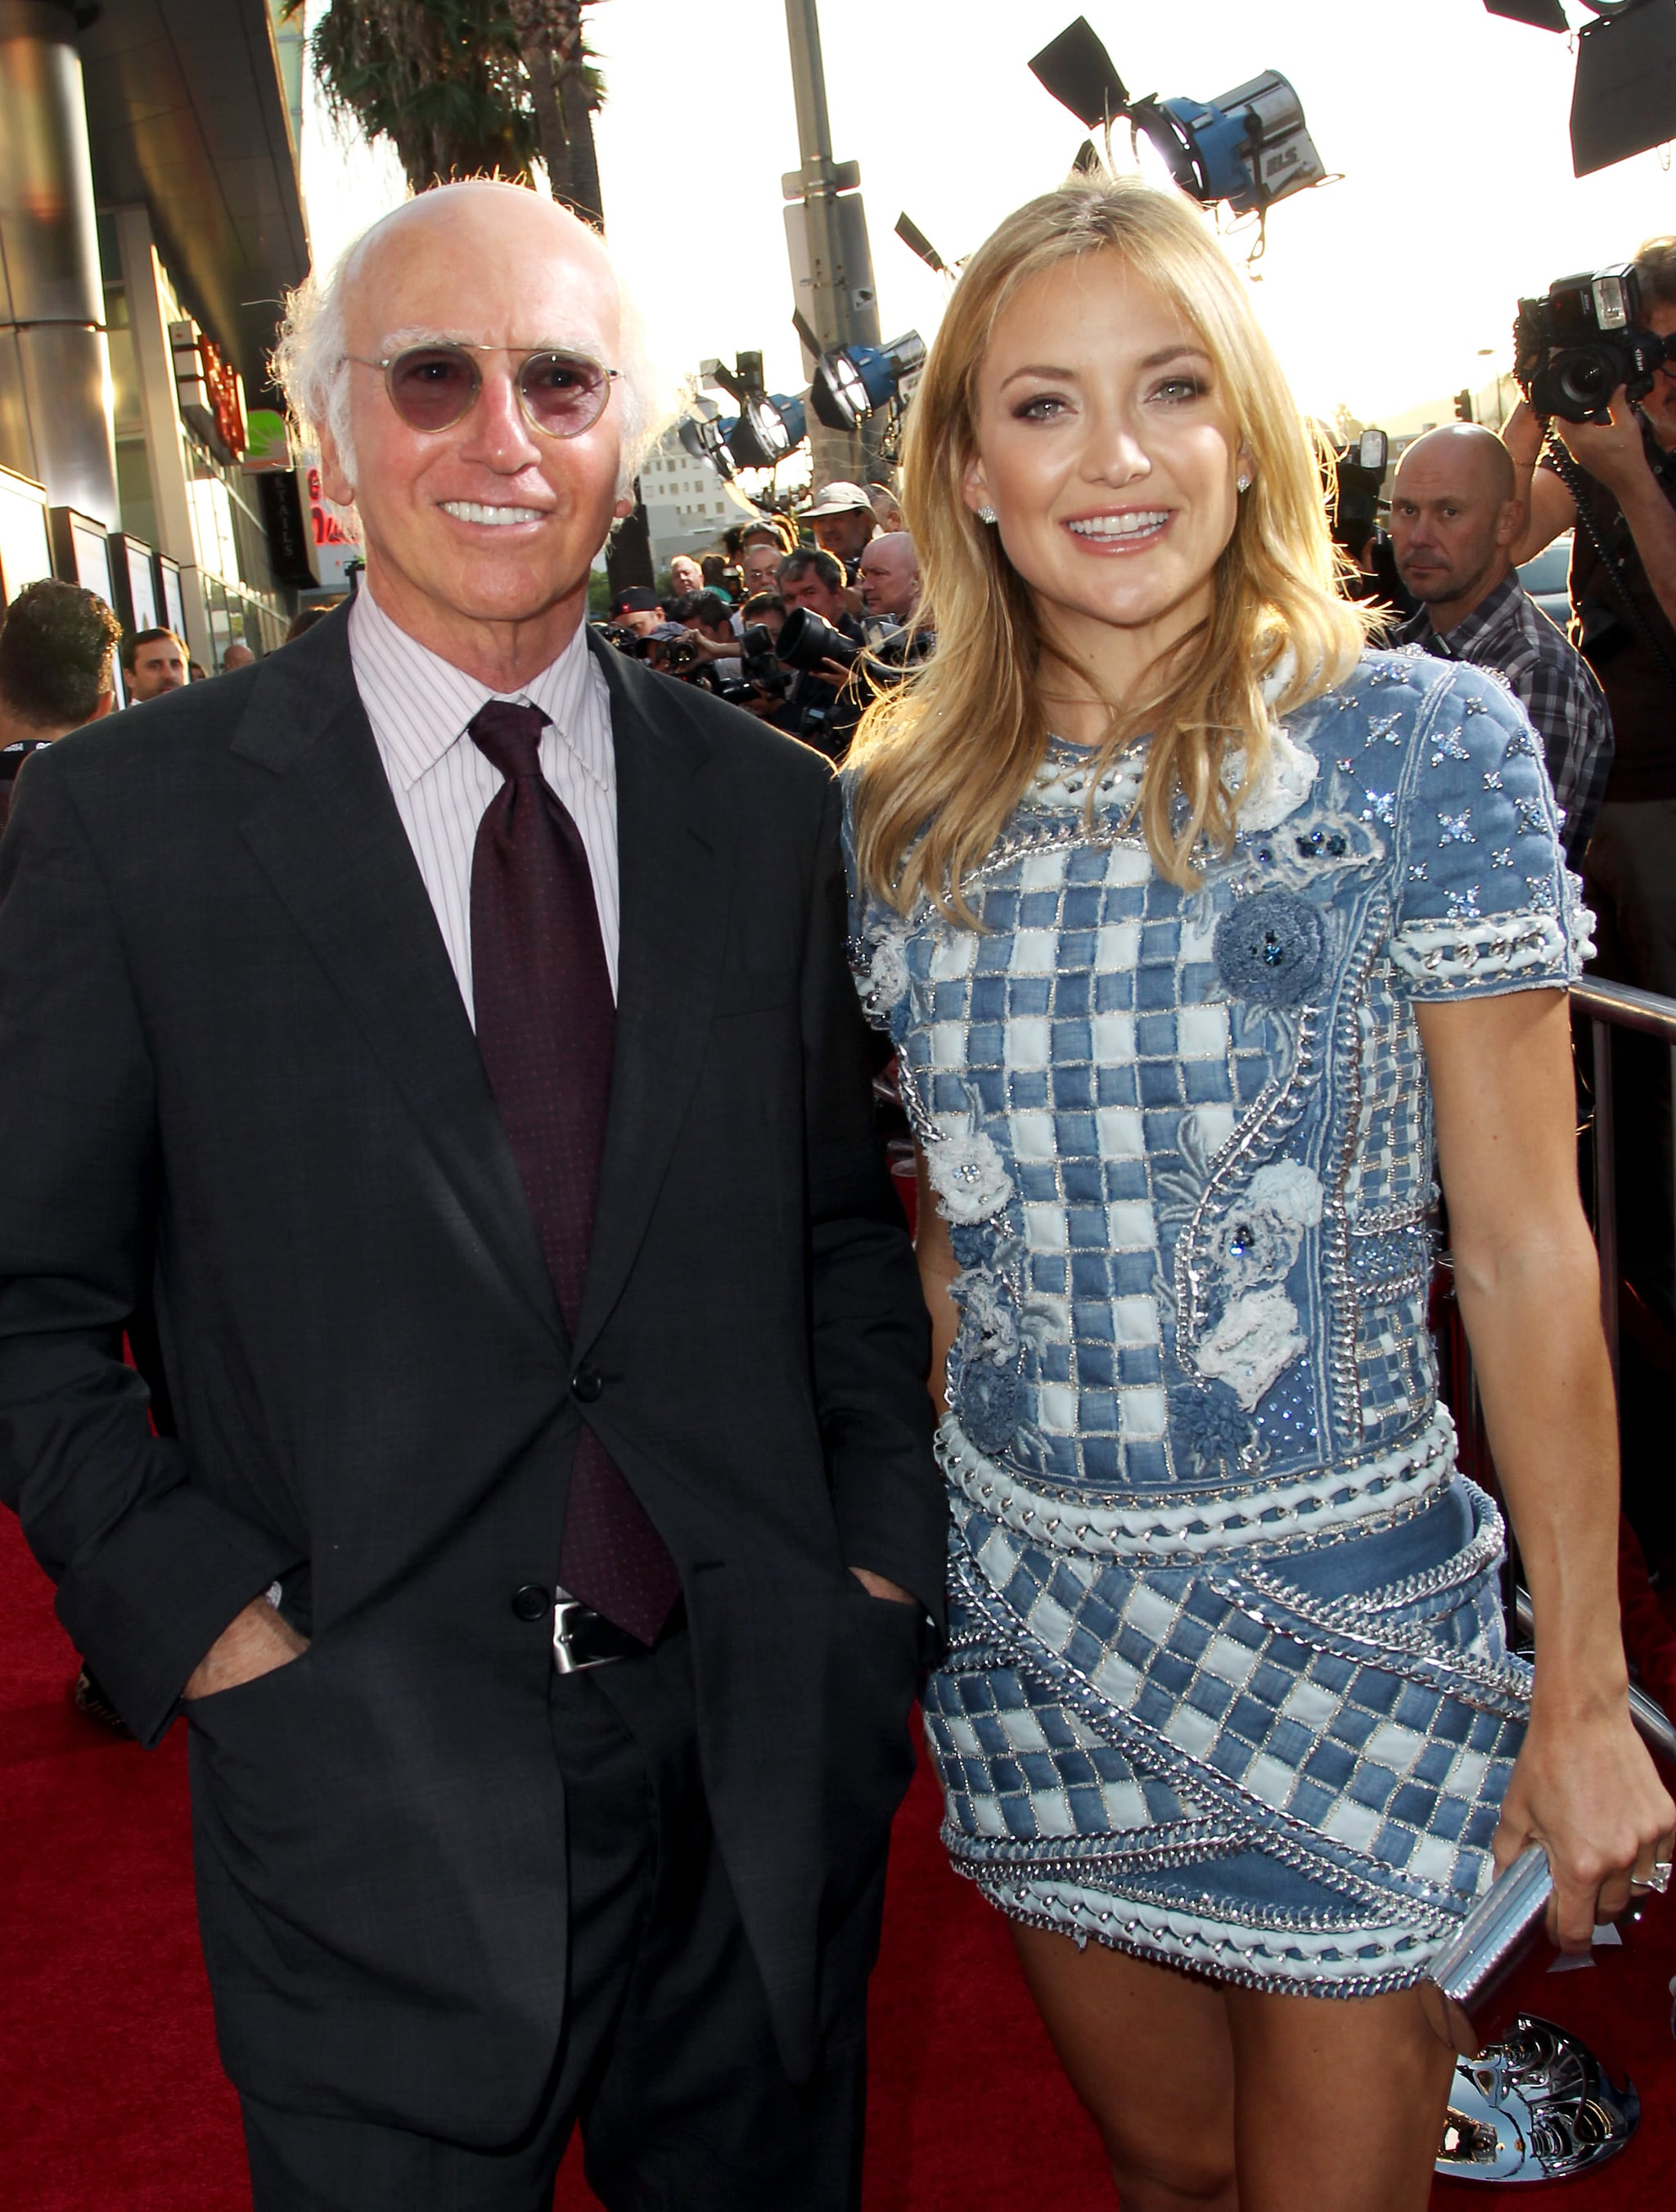 Kate Hudson, wearing Dana Rebecca Designs earrings, met up with Larry David on the red carpet.